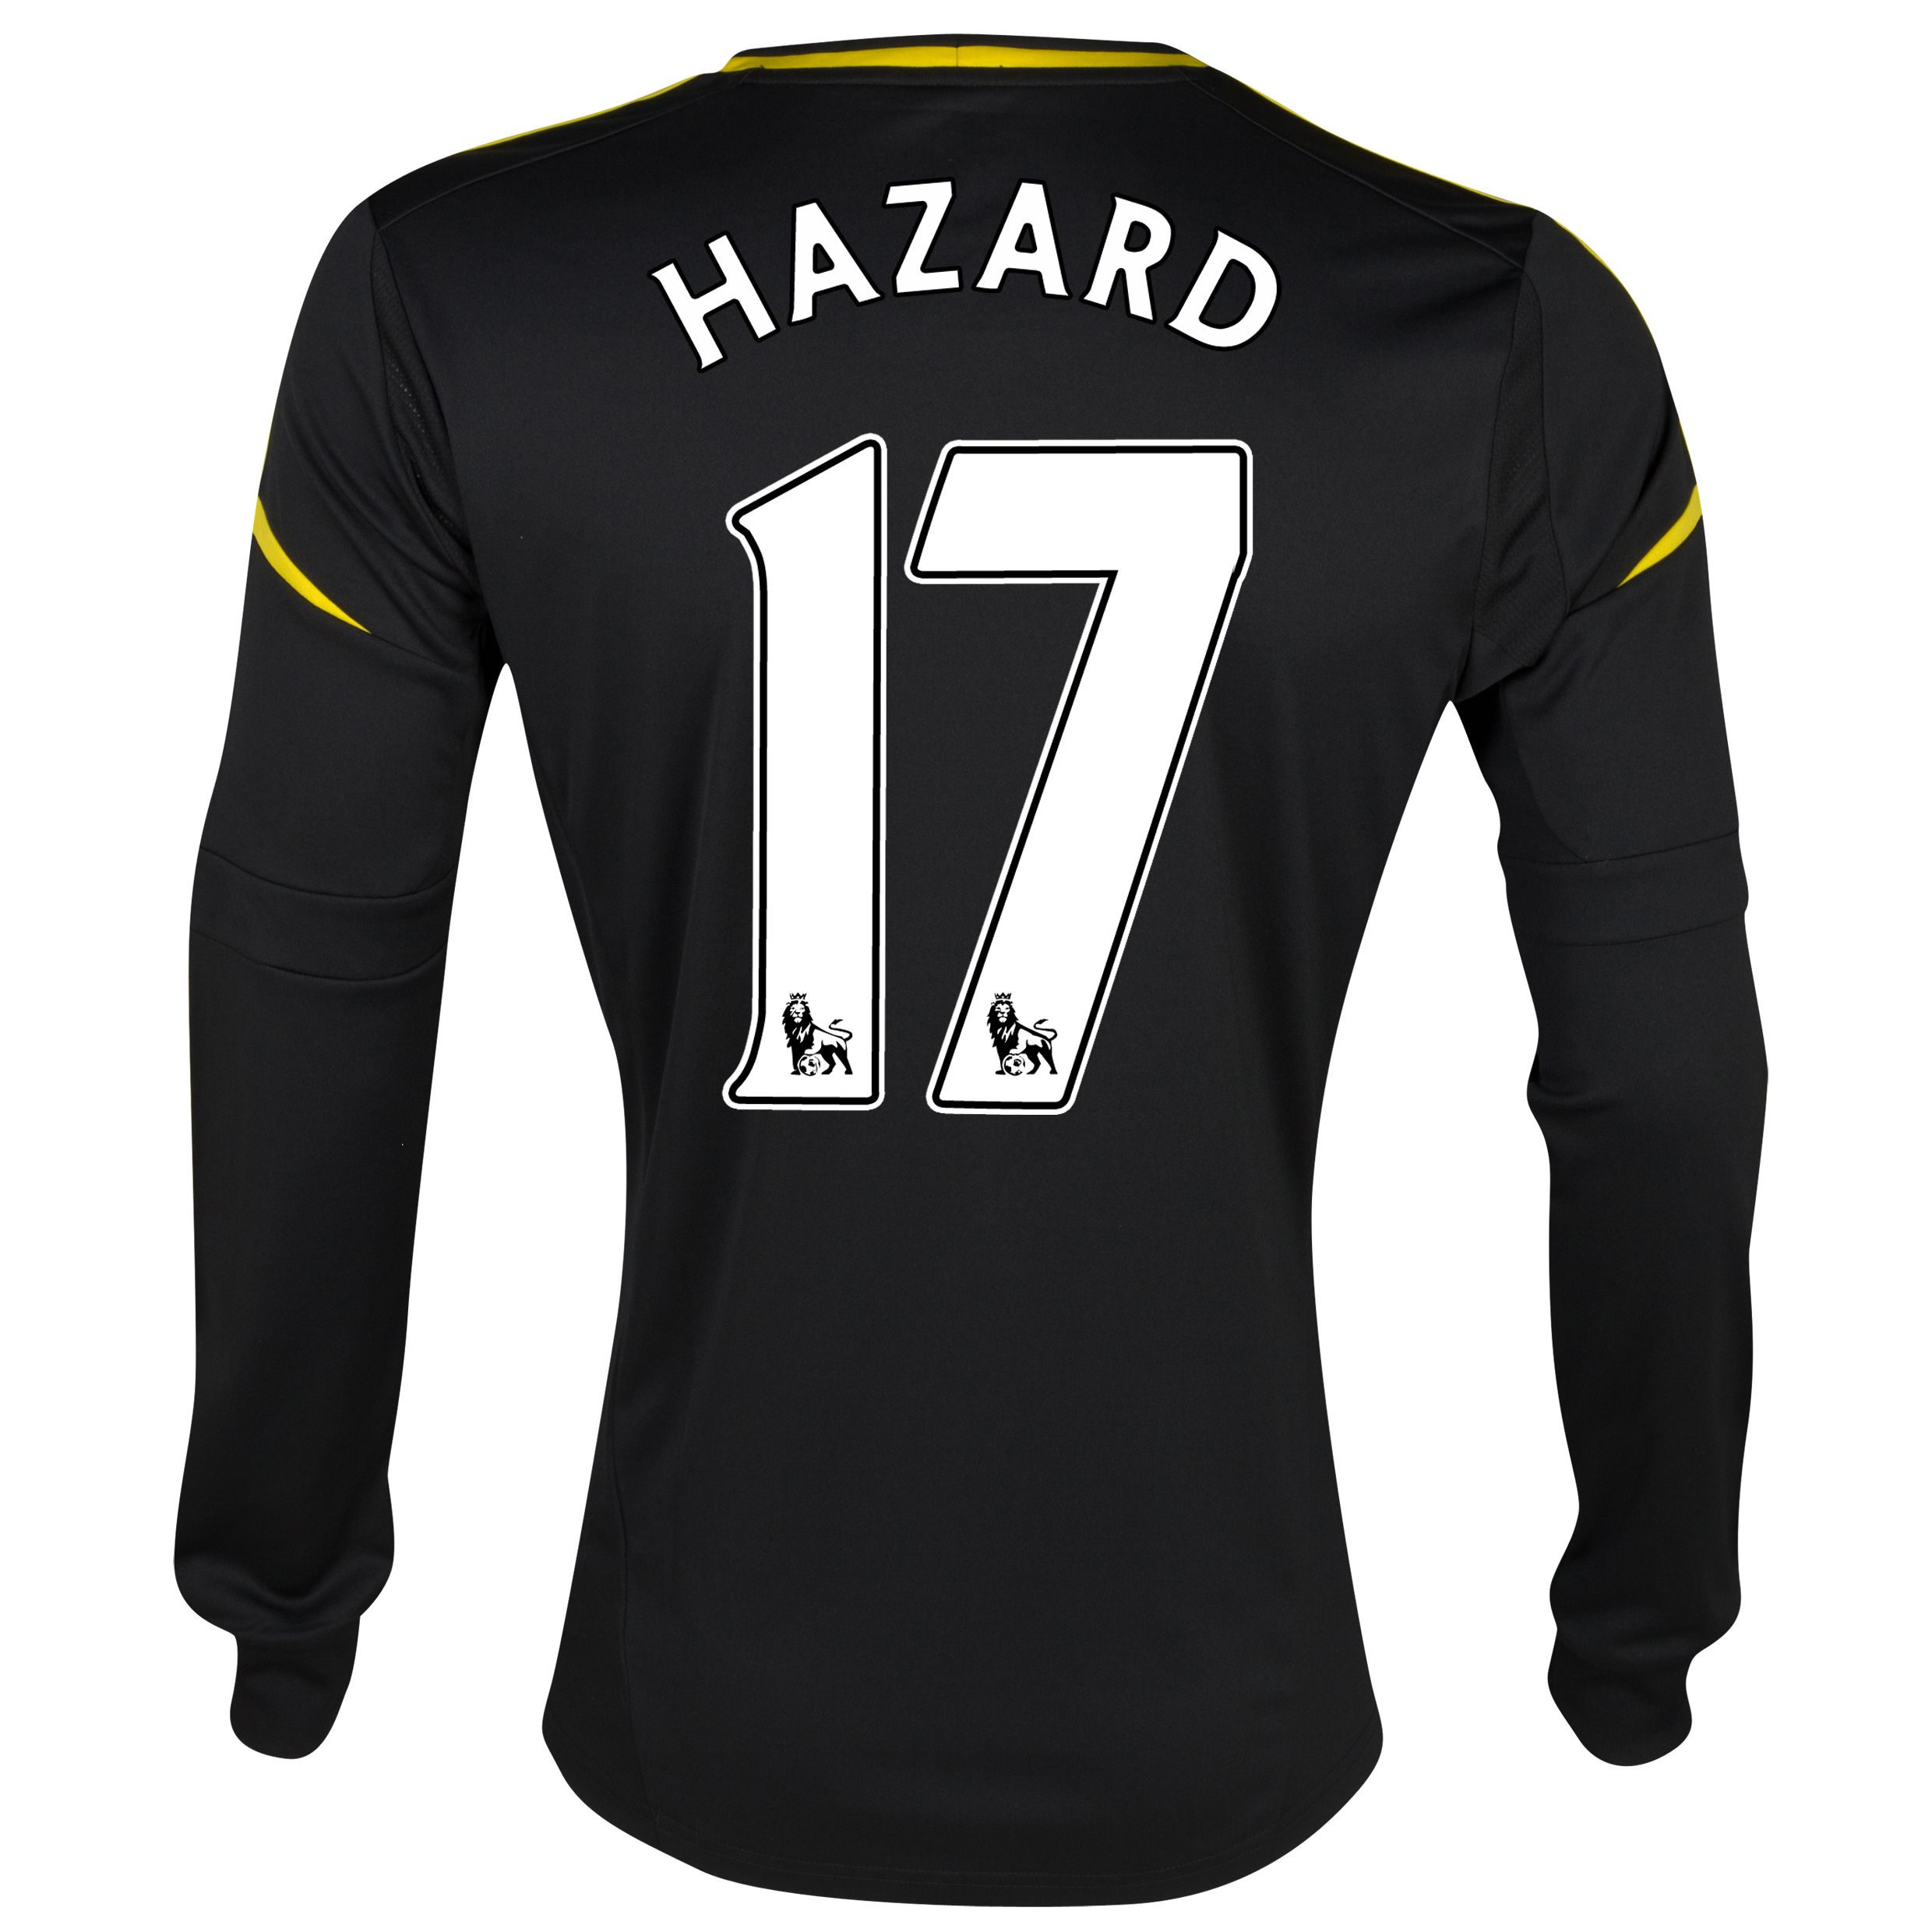 Chelsea Third Shirt 2012/13 - Long Sleeved with Hazard 17 printing